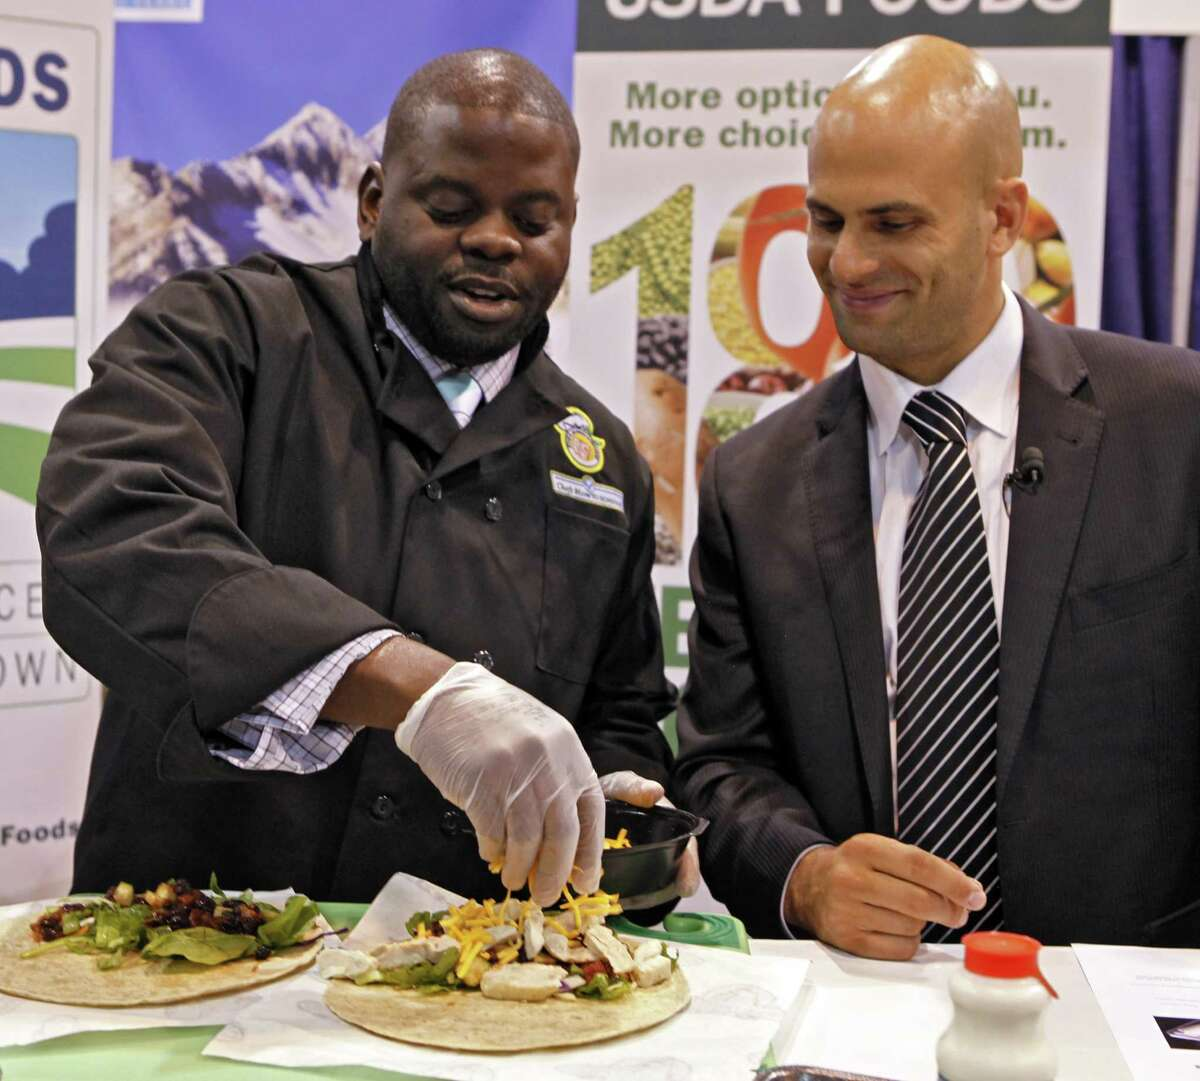 In this July 17, 2012 photo Kern Halls, , a former Disney World restaurant manager who now works in school nutrition Orange County (Fla.) Public Schools, left, demonstrates the making of a wrap for school lunches during the School Nutrition Association conference in Denver asWhite House chef Sam Kass watches. There are plenty of vegetables and other healthy options on school menus these days. The challenge is getting children to eat them. (AP Photo/Ed Andrieski)